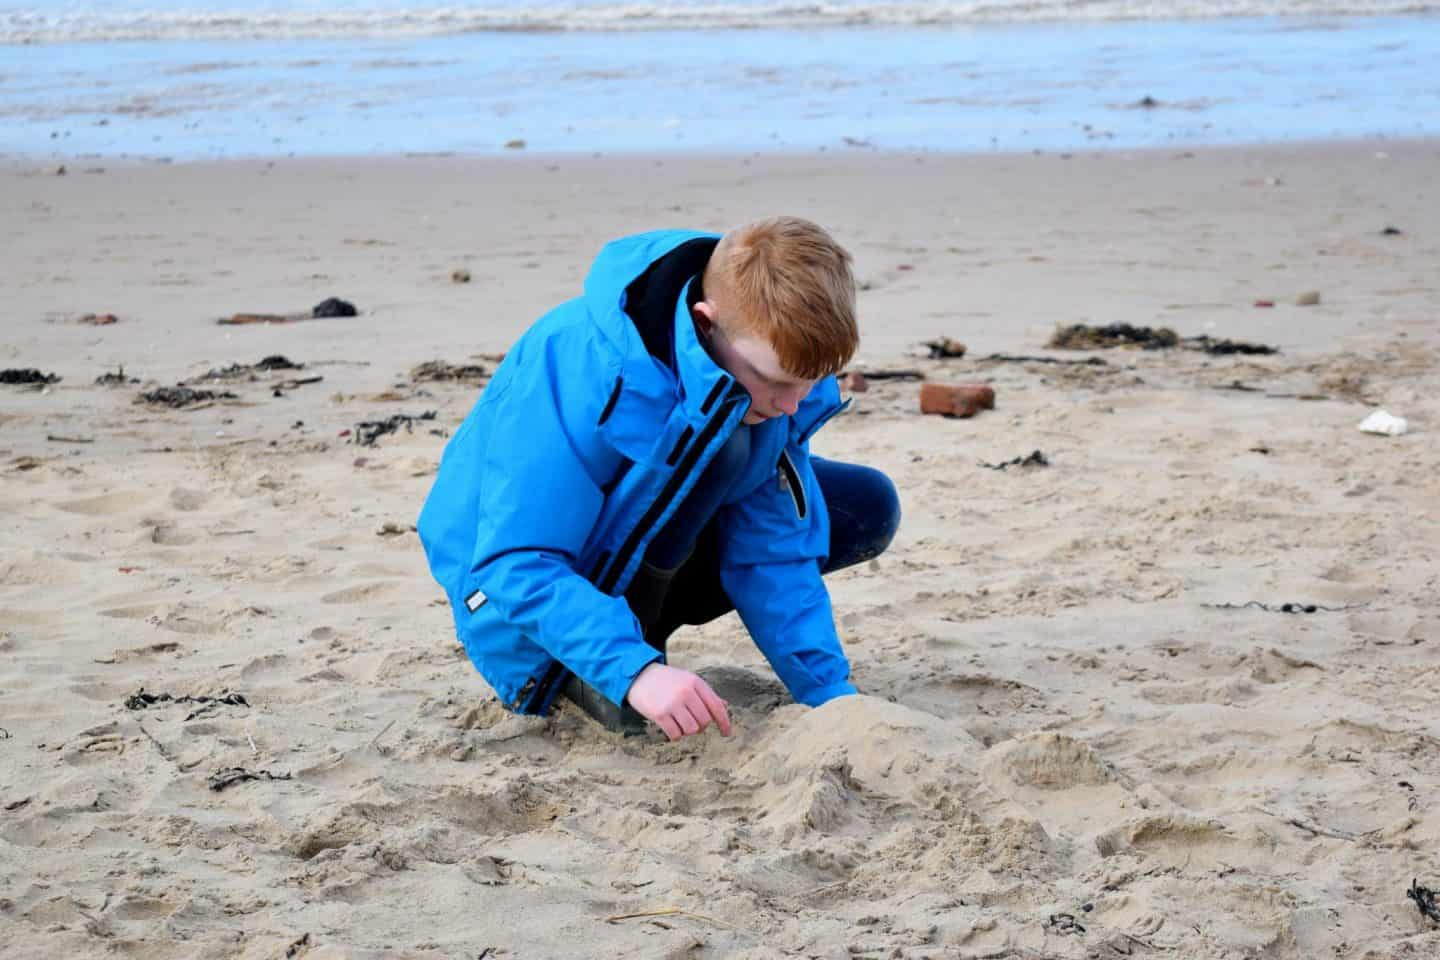 Making a sand sculpture at Formby